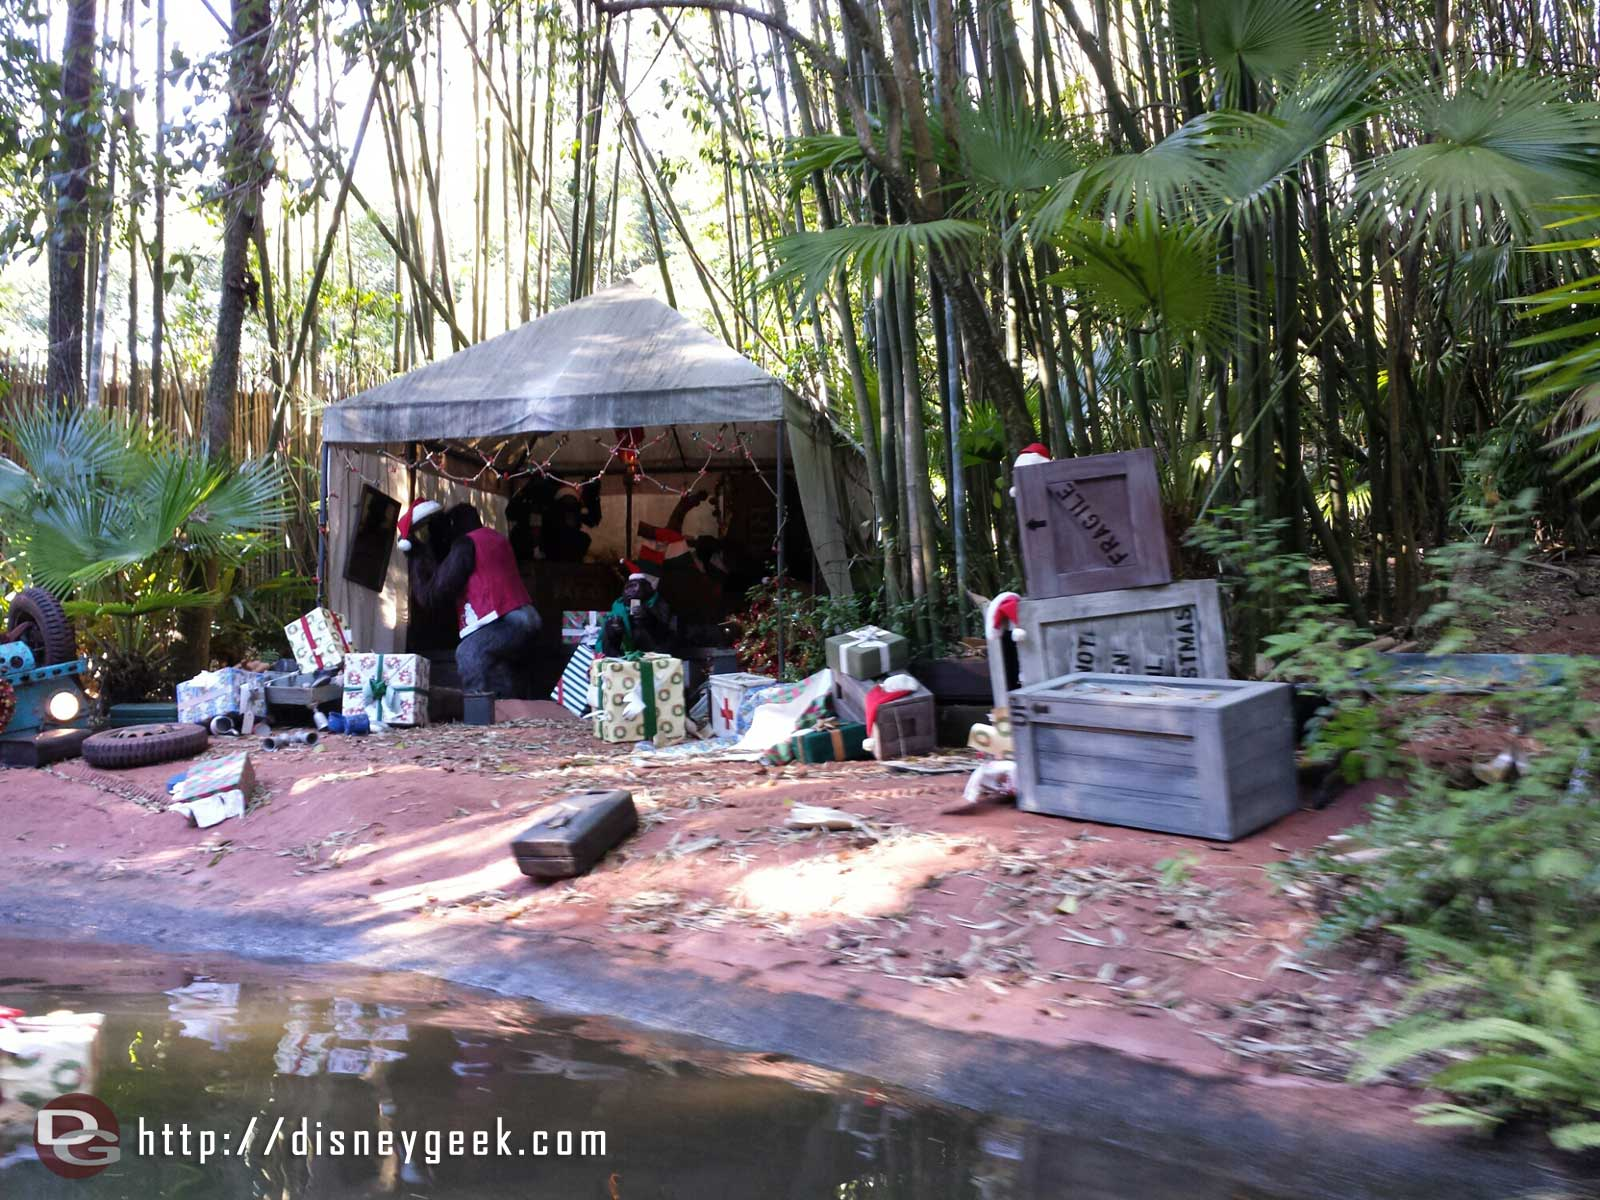 Jingle Cruise gorilla encampment #WDW